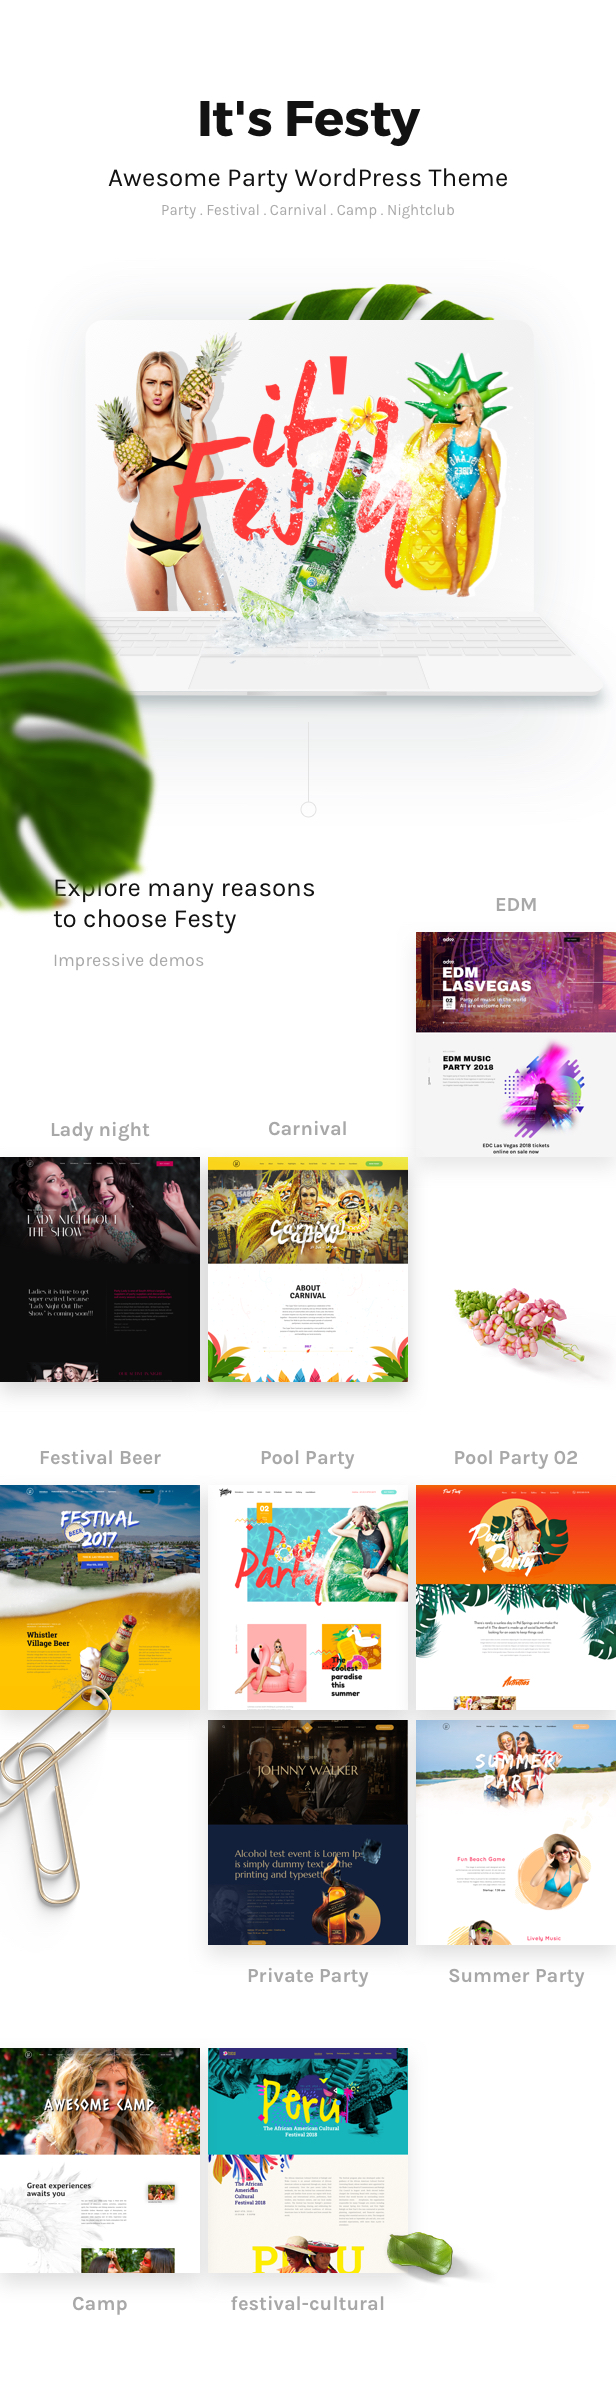 Demo Festy WordPress Theme